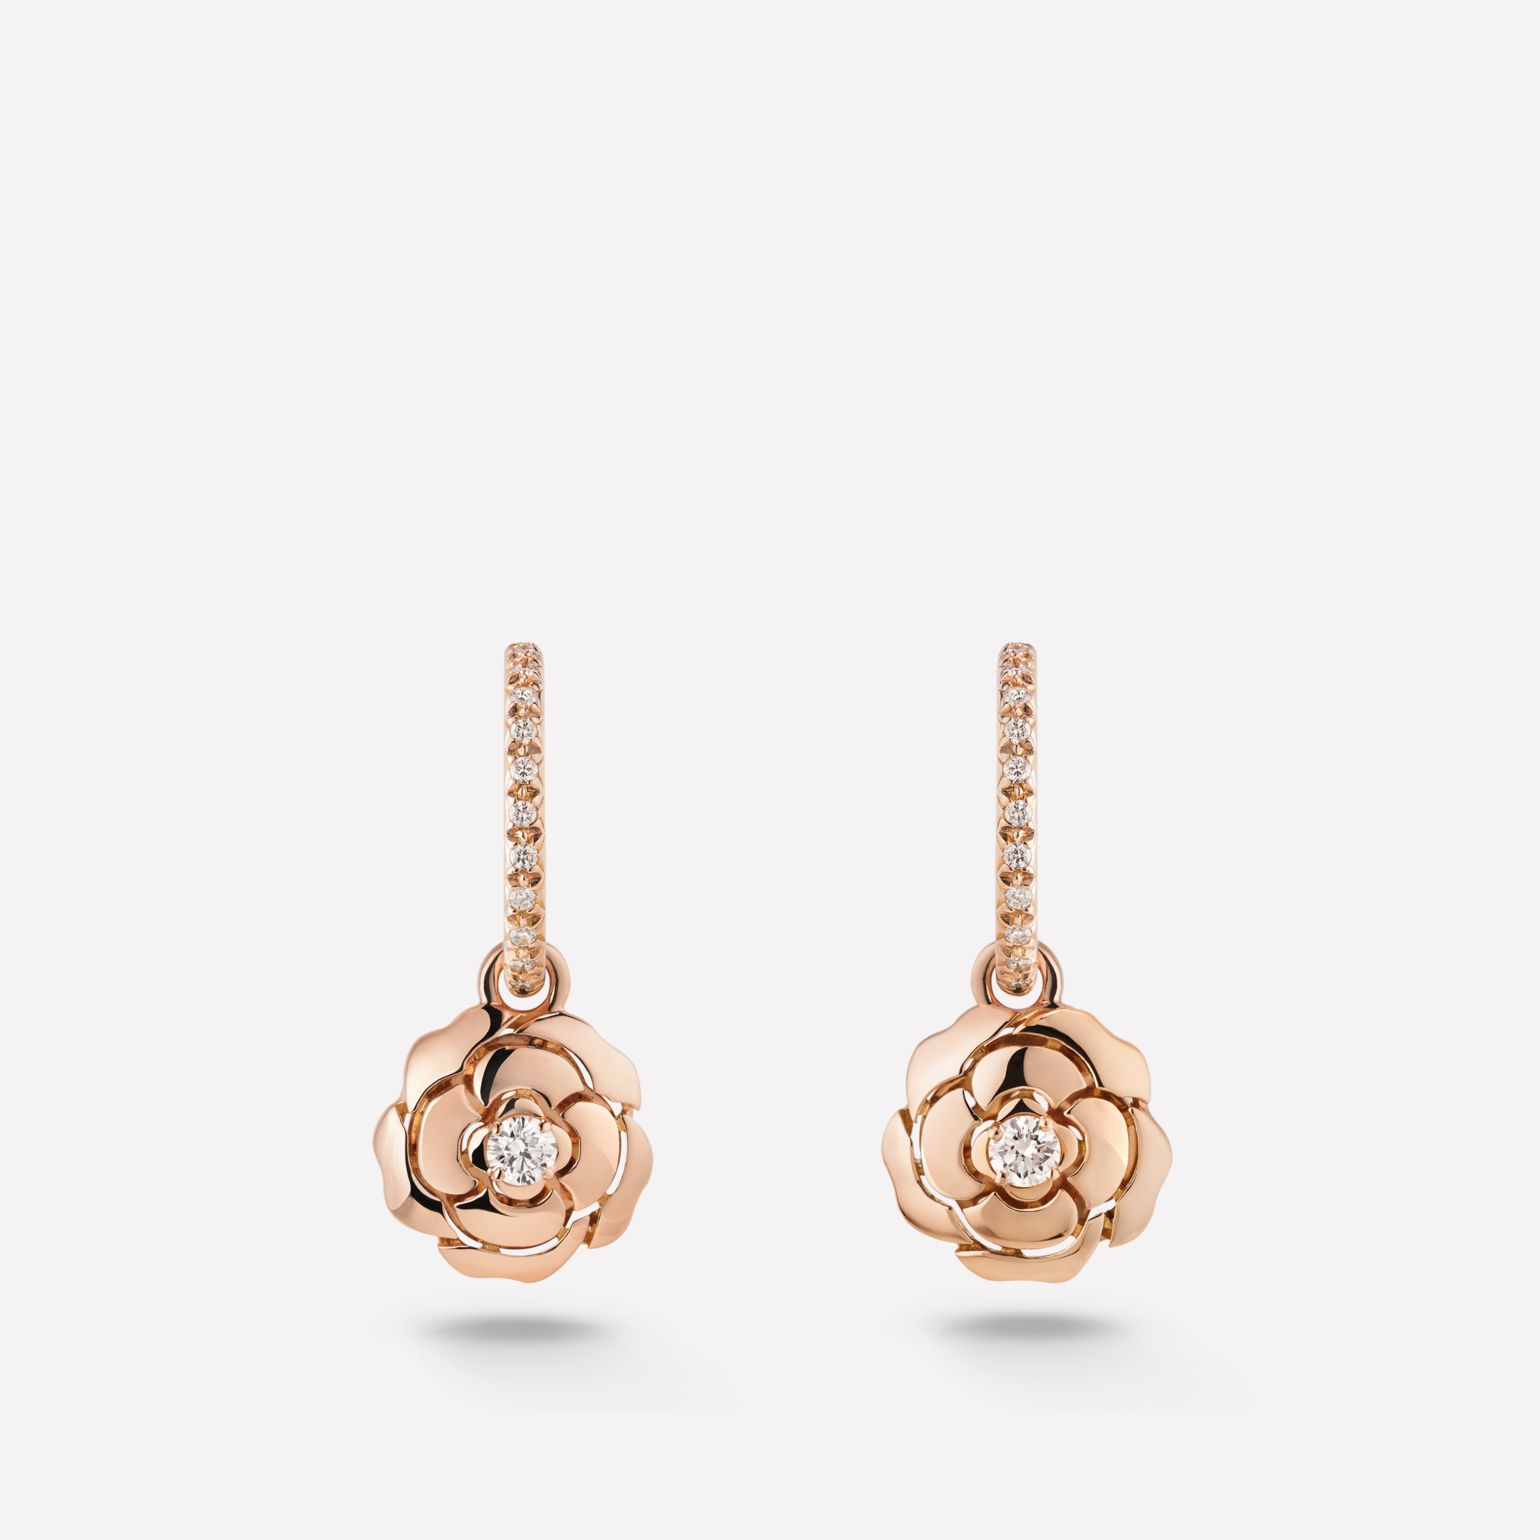 Extrait de Camélia earrings Extrait de Camélia dangling earrings in 18K pink gold and diamonds with central diamonds